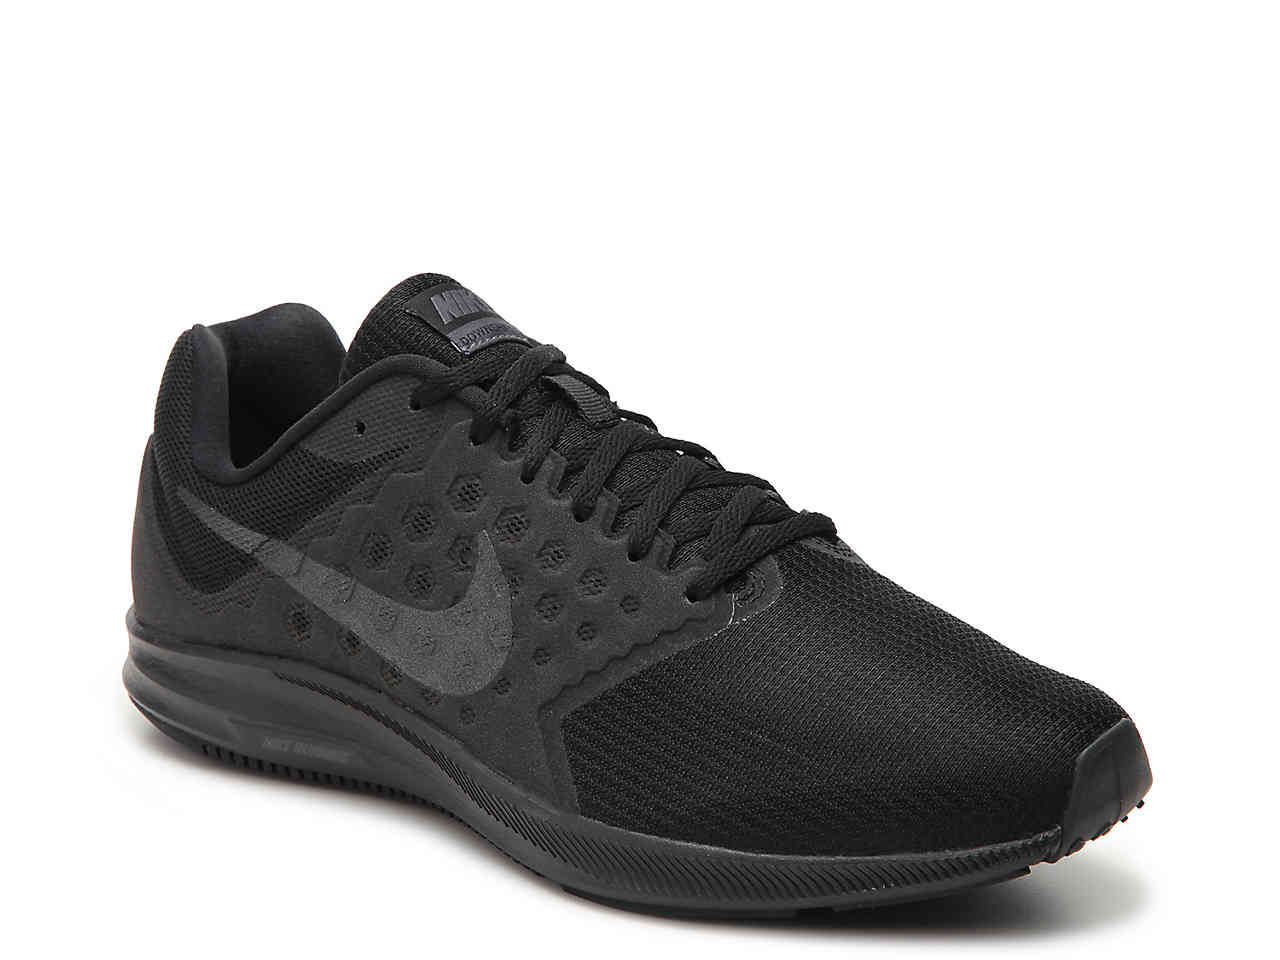 nike downshifter 7 women's running shoes